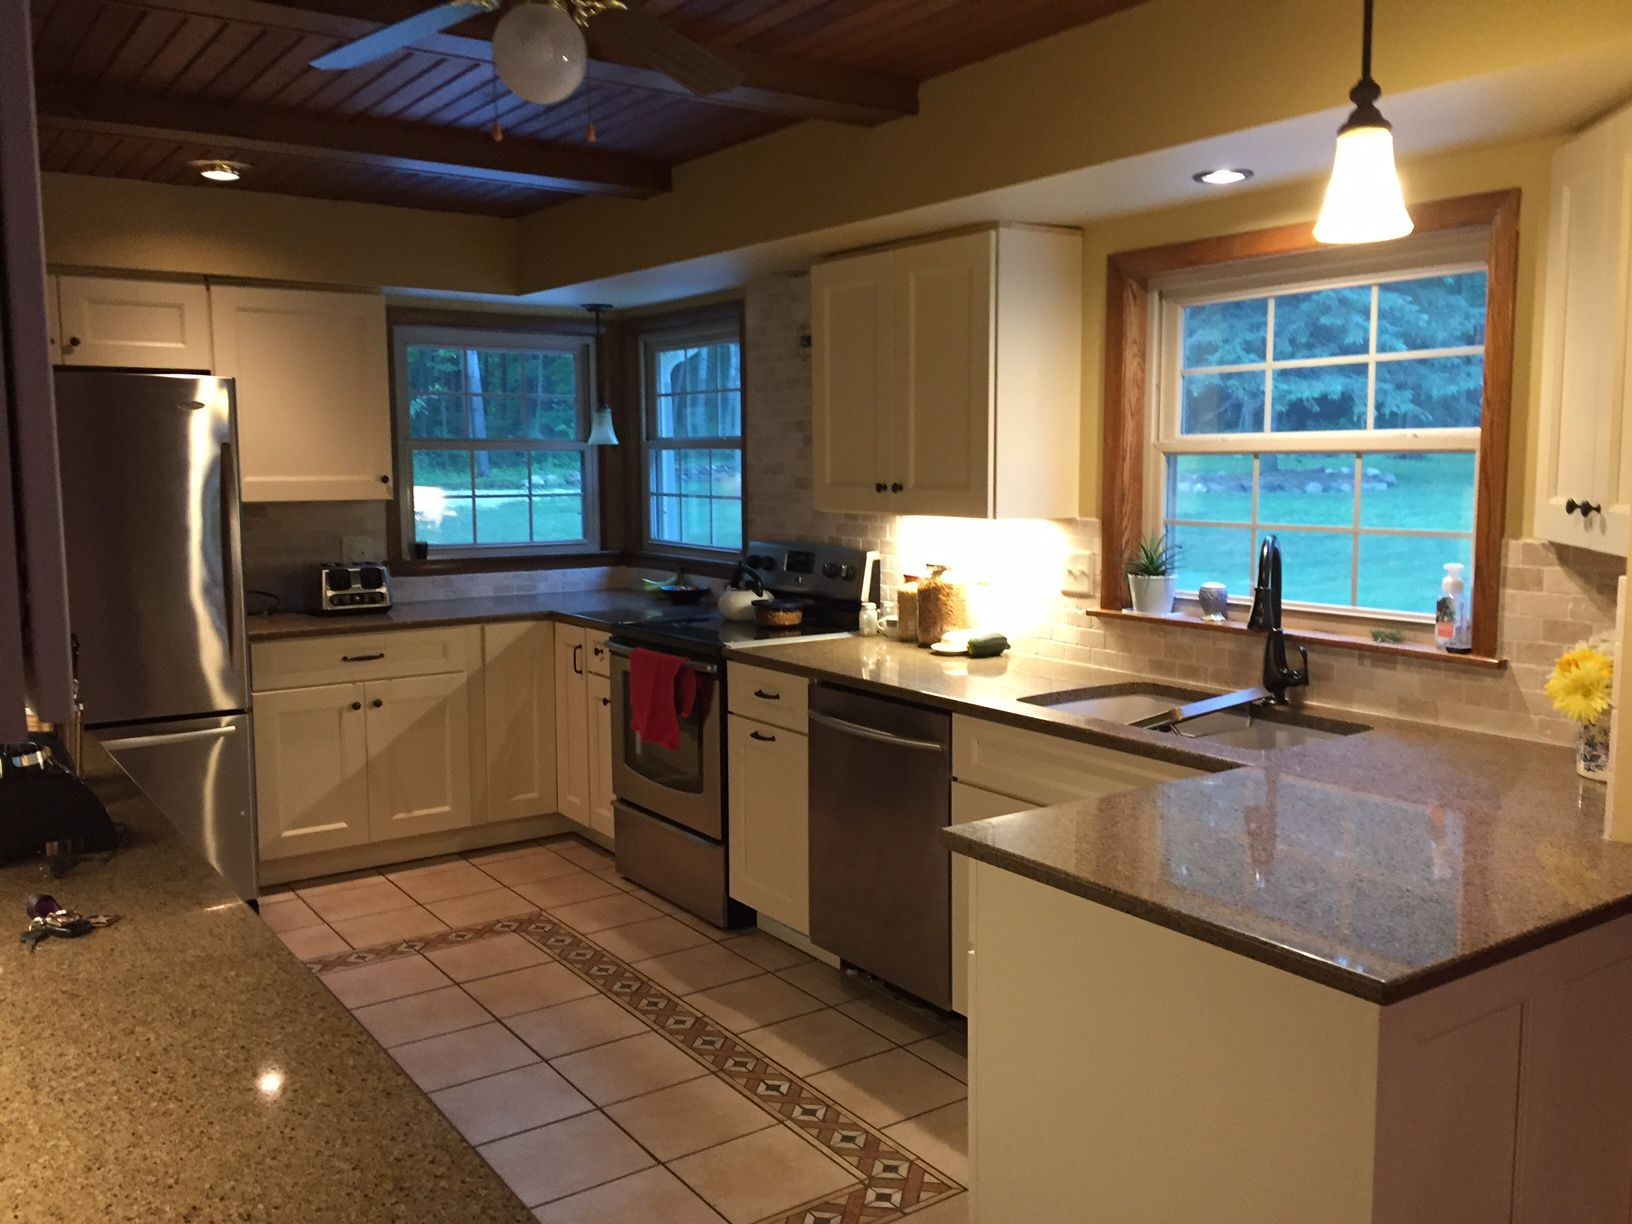 We Received A Great Review From A Recent Guest After Purchasing Quartz Countertop This Guest Hired Mr Krug To Install It In Menards Menards Store Homeowner